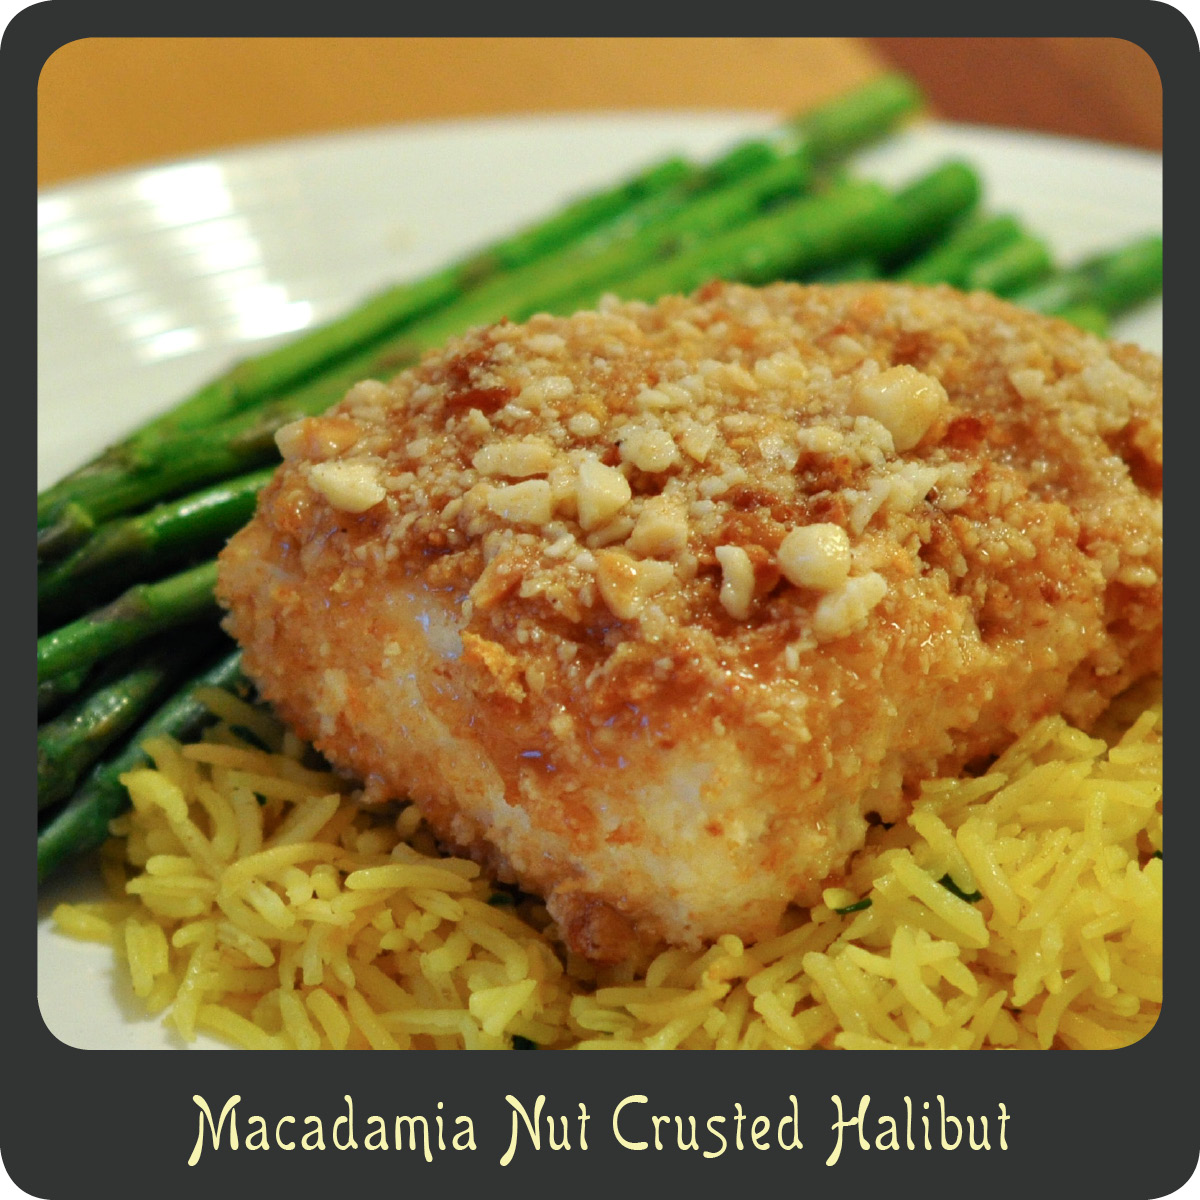 ... macadamia nut crusted tilapia macadamia crusted white fish macadamia